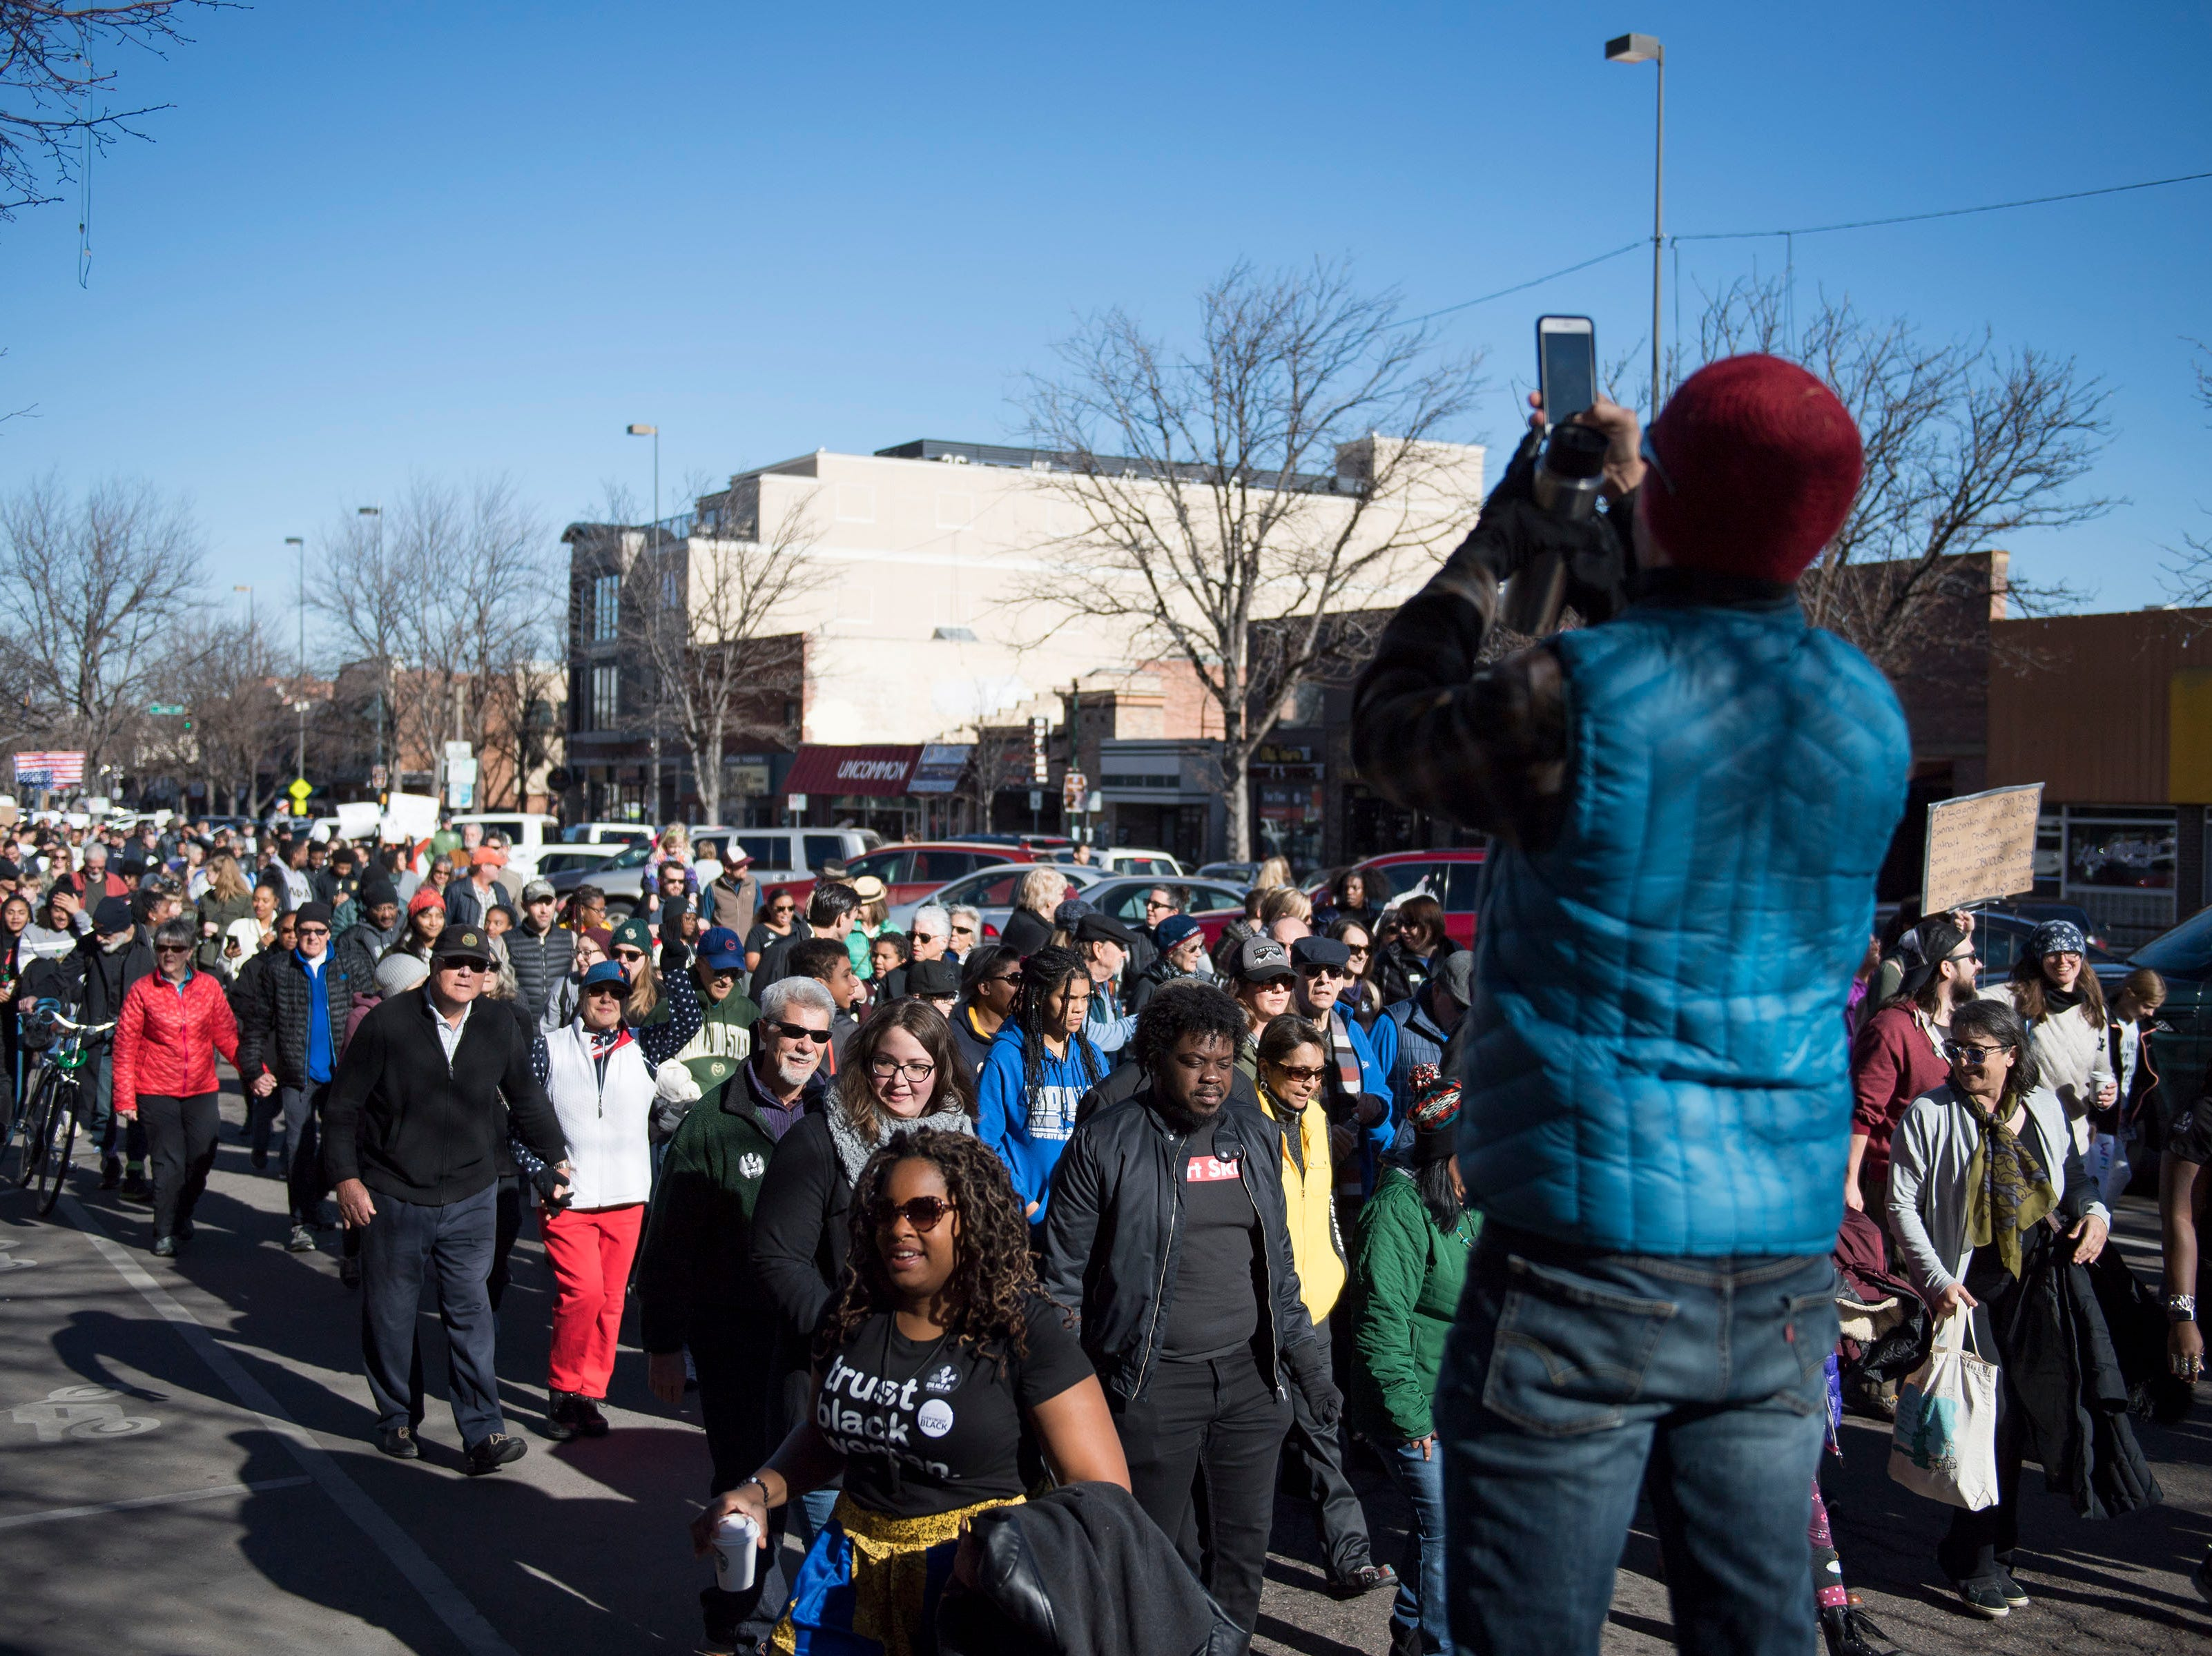 Seth Lorson takes a photo of the march heading down South College Avenue during the Dr. Martin Luther King, Jr. March & Celebration on Monday, Jan. 21, 2019, in Fort Collins, Colo.